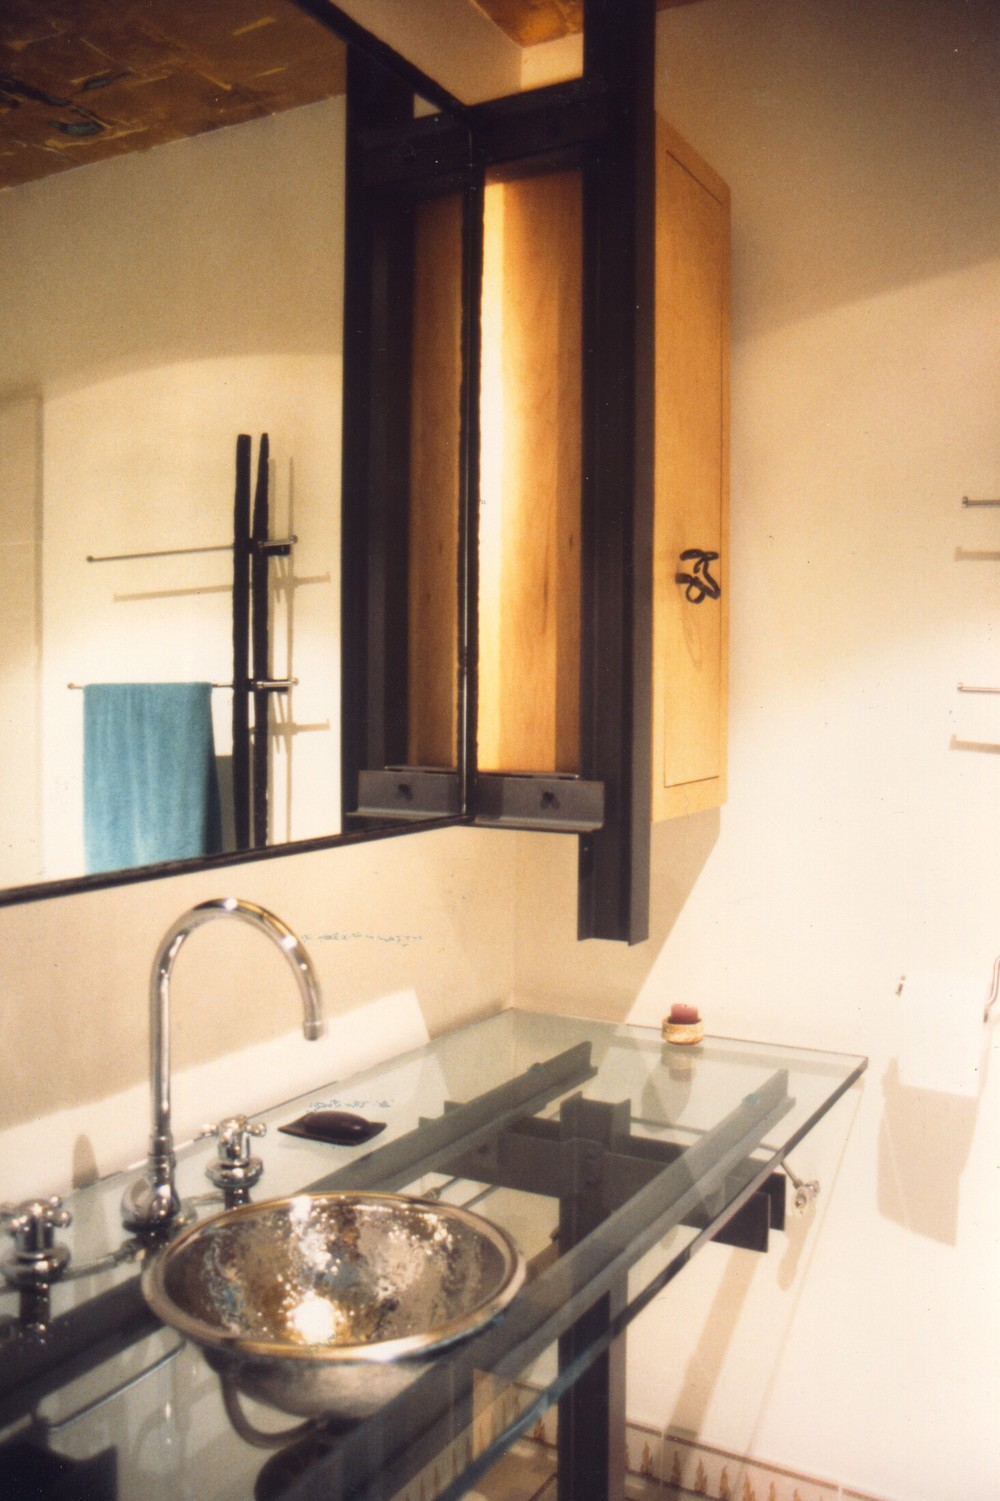 Bathroom Floating Backlit Mirro + Side Cabinet - Custom Towel Rack Seen in Mirror